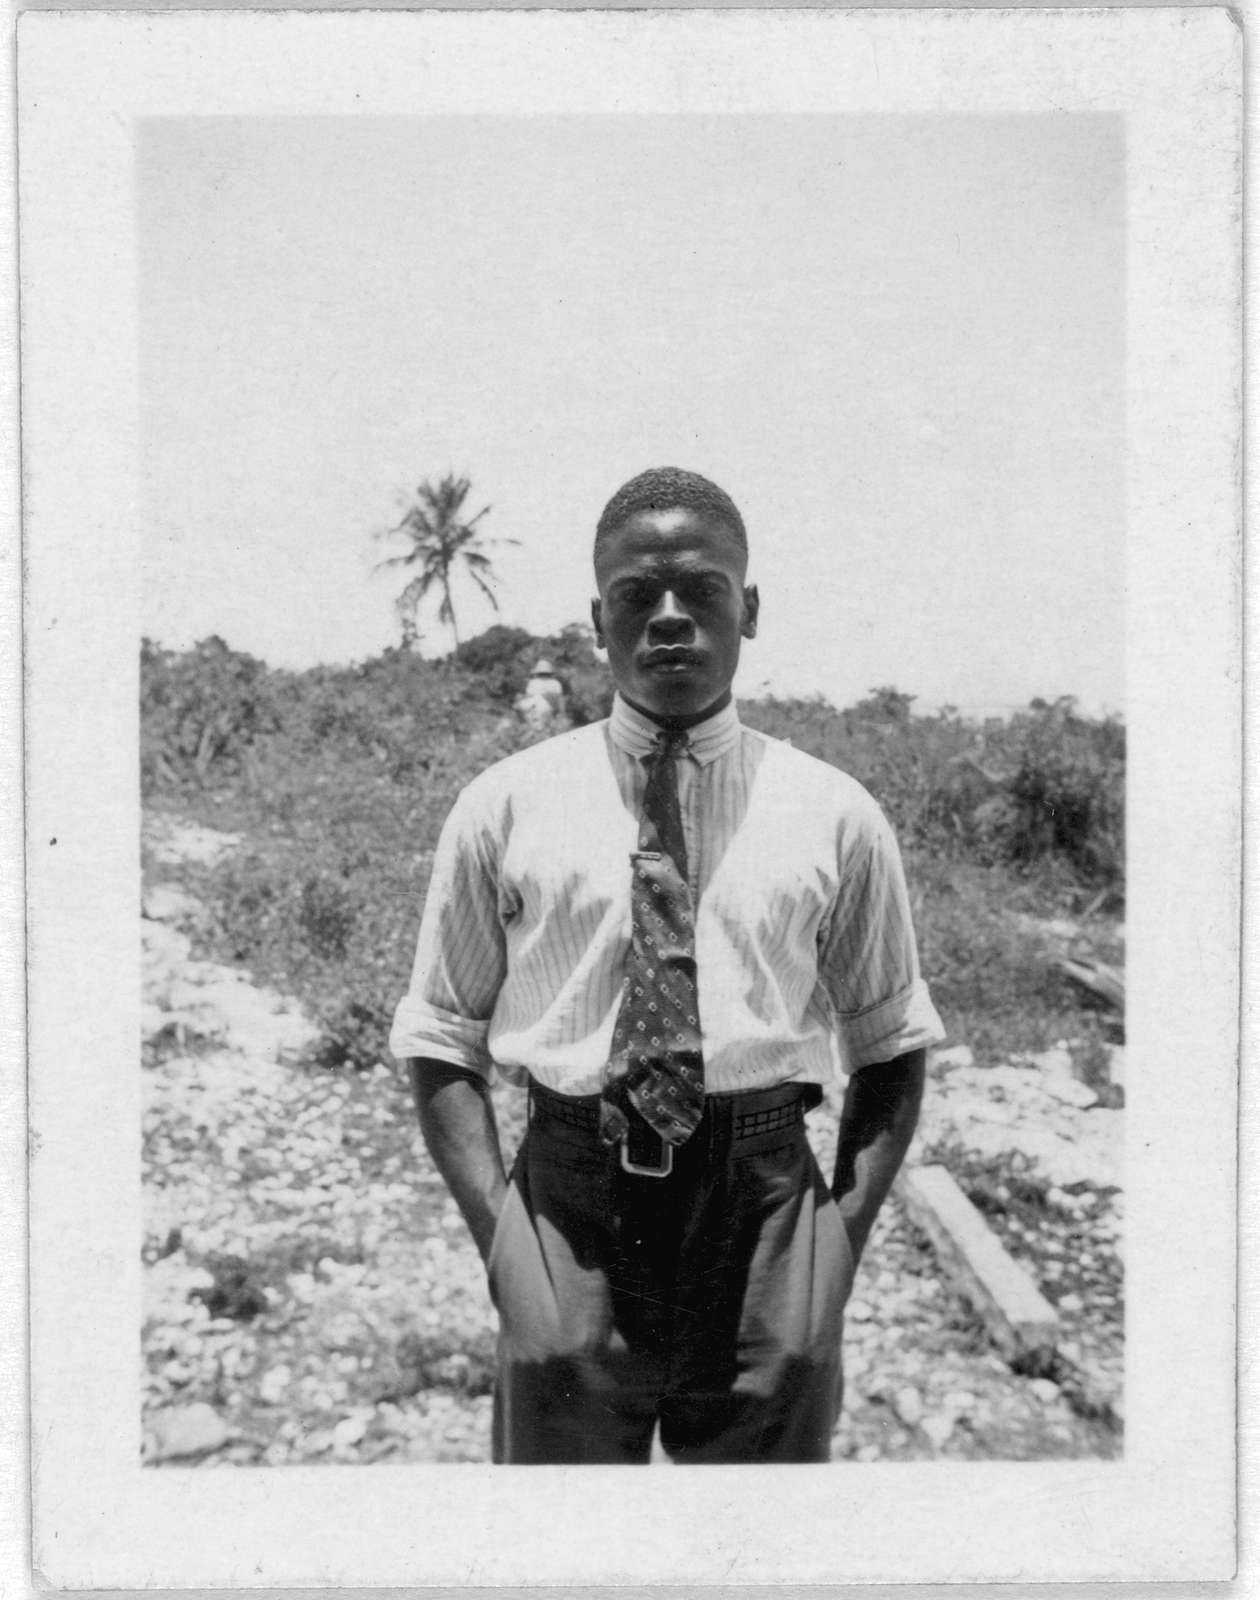 [Man wearing tie, standing, facing front, possibly from the visit by Alan Lomax and Mary Elizabeth Barnicle to Andros Island in the Bahamas]